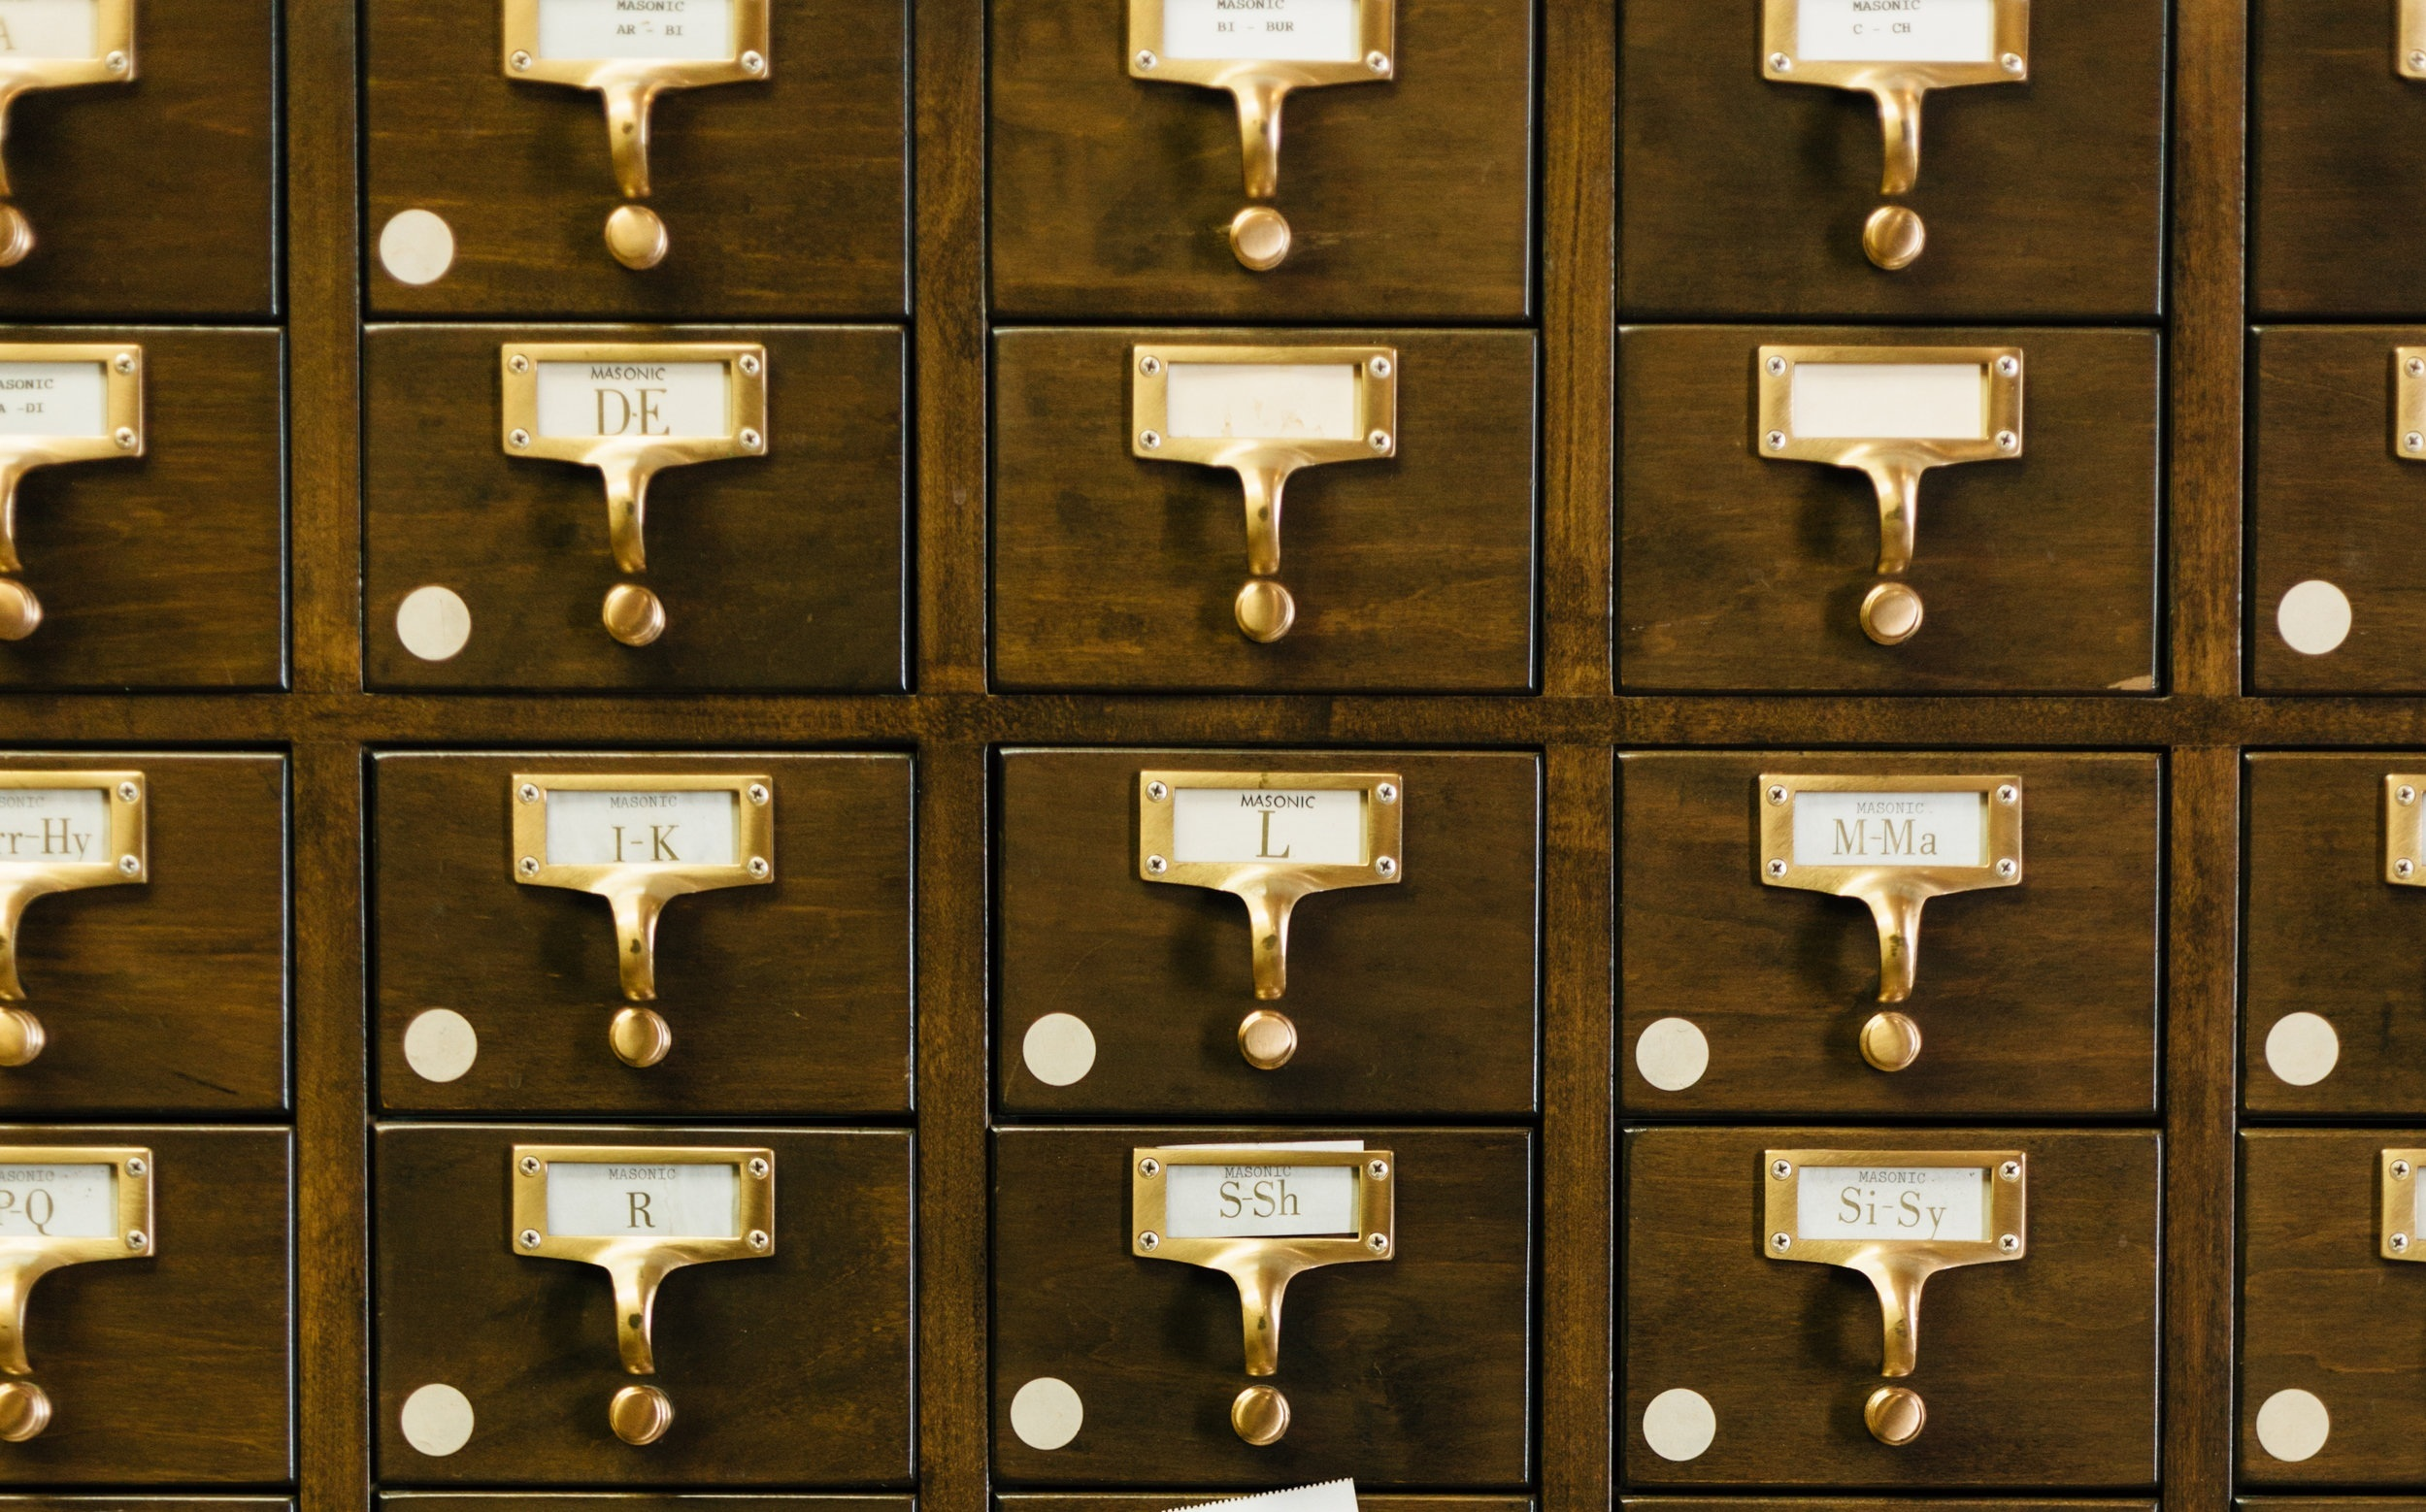 Old fashioned library filing system made of small wooden draws with brass alphabet labels